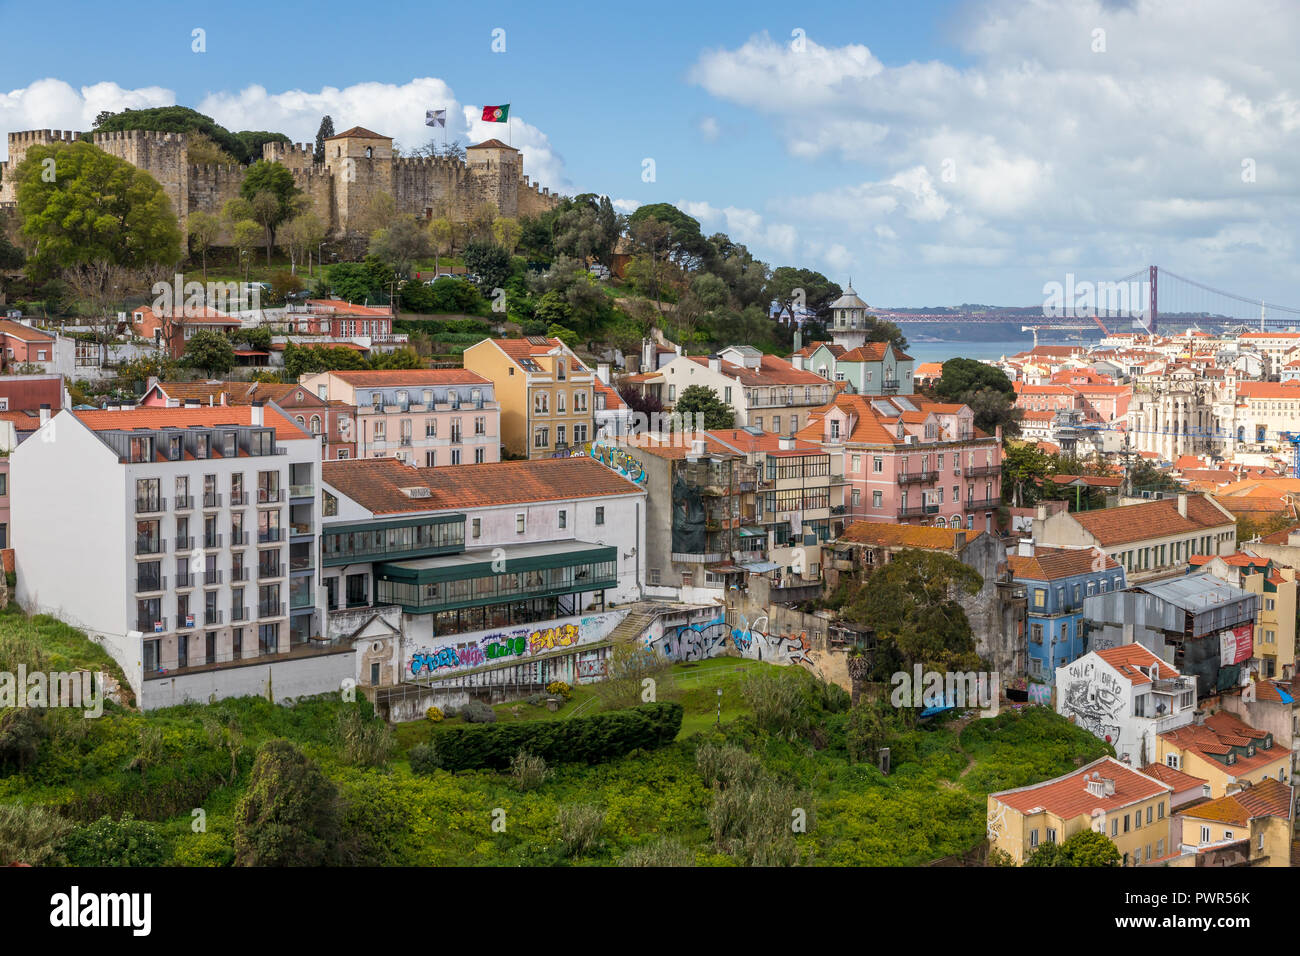 View from a lookout over the city centre and the Saint George castle in the background, Lisbon, Portugal, Europe - Stock Image